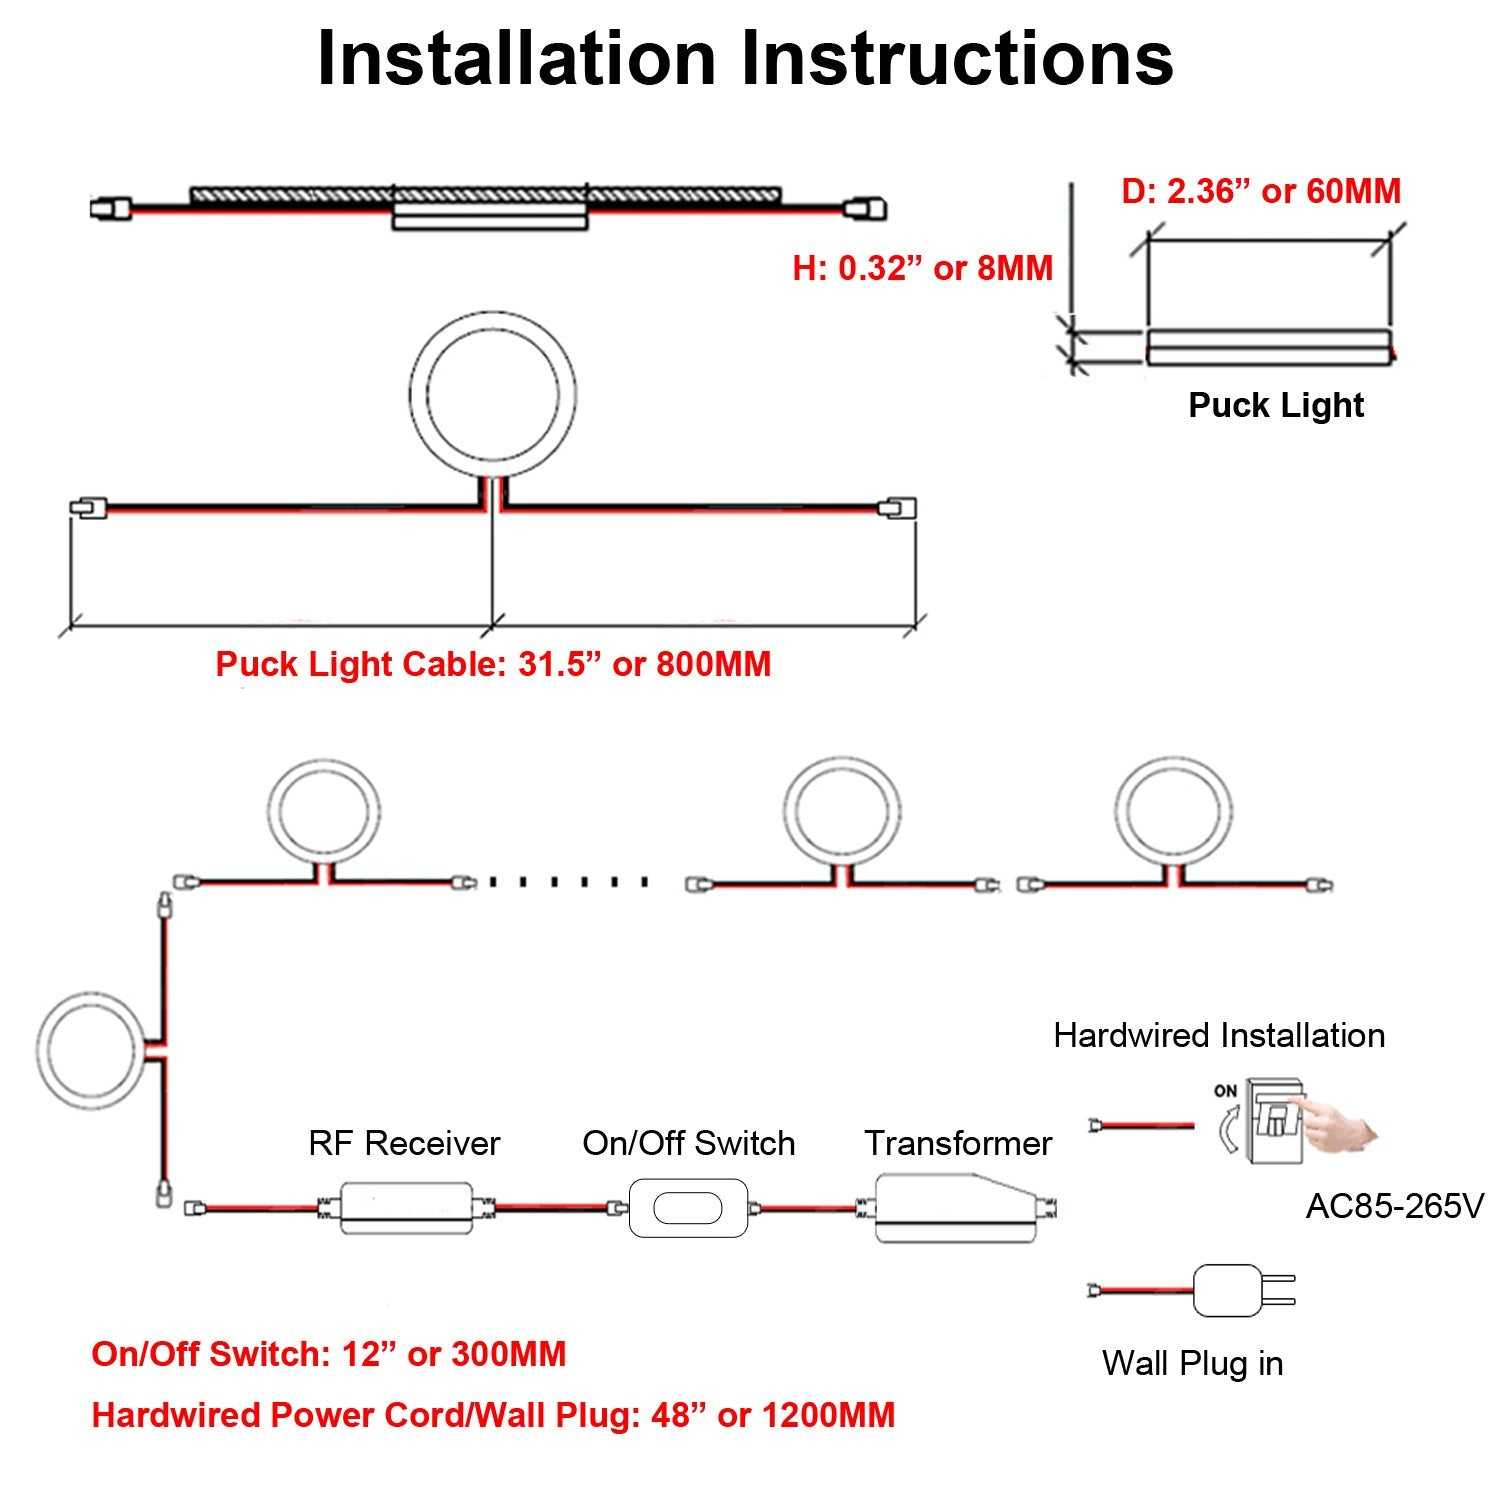 8 Lights, Warm White AIBOO Linkable Under Cabinet LED Lighting 12V Dimmable Puck Lights Hardwired with Wireless RF Remote Control for Kitchen Mood Lighting